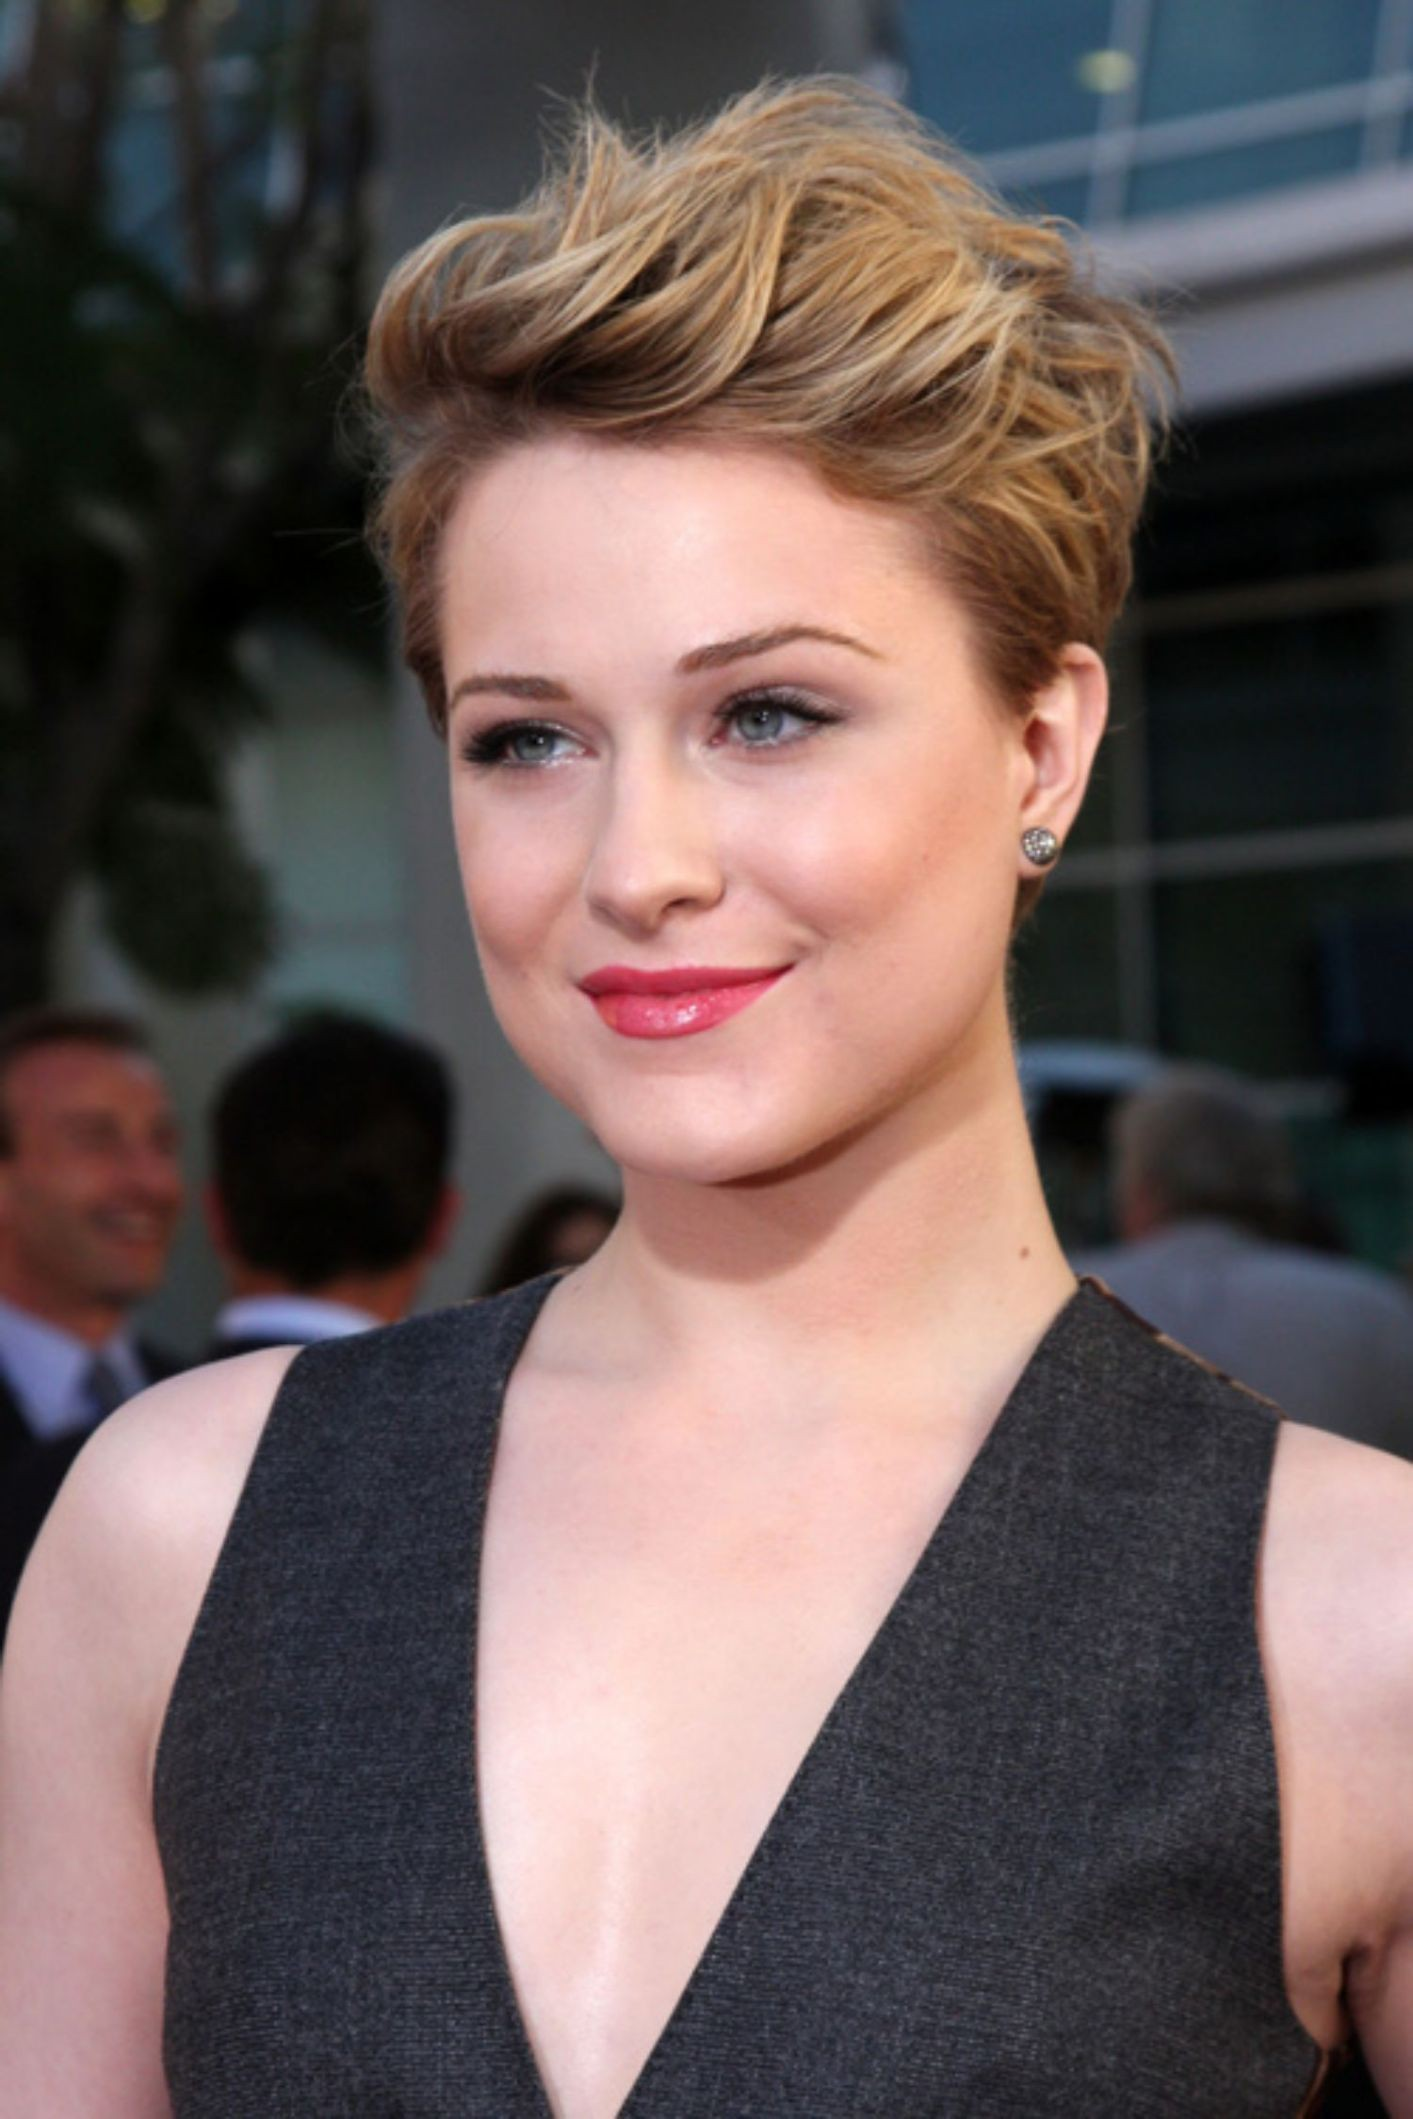 Short hair for girls with round faces